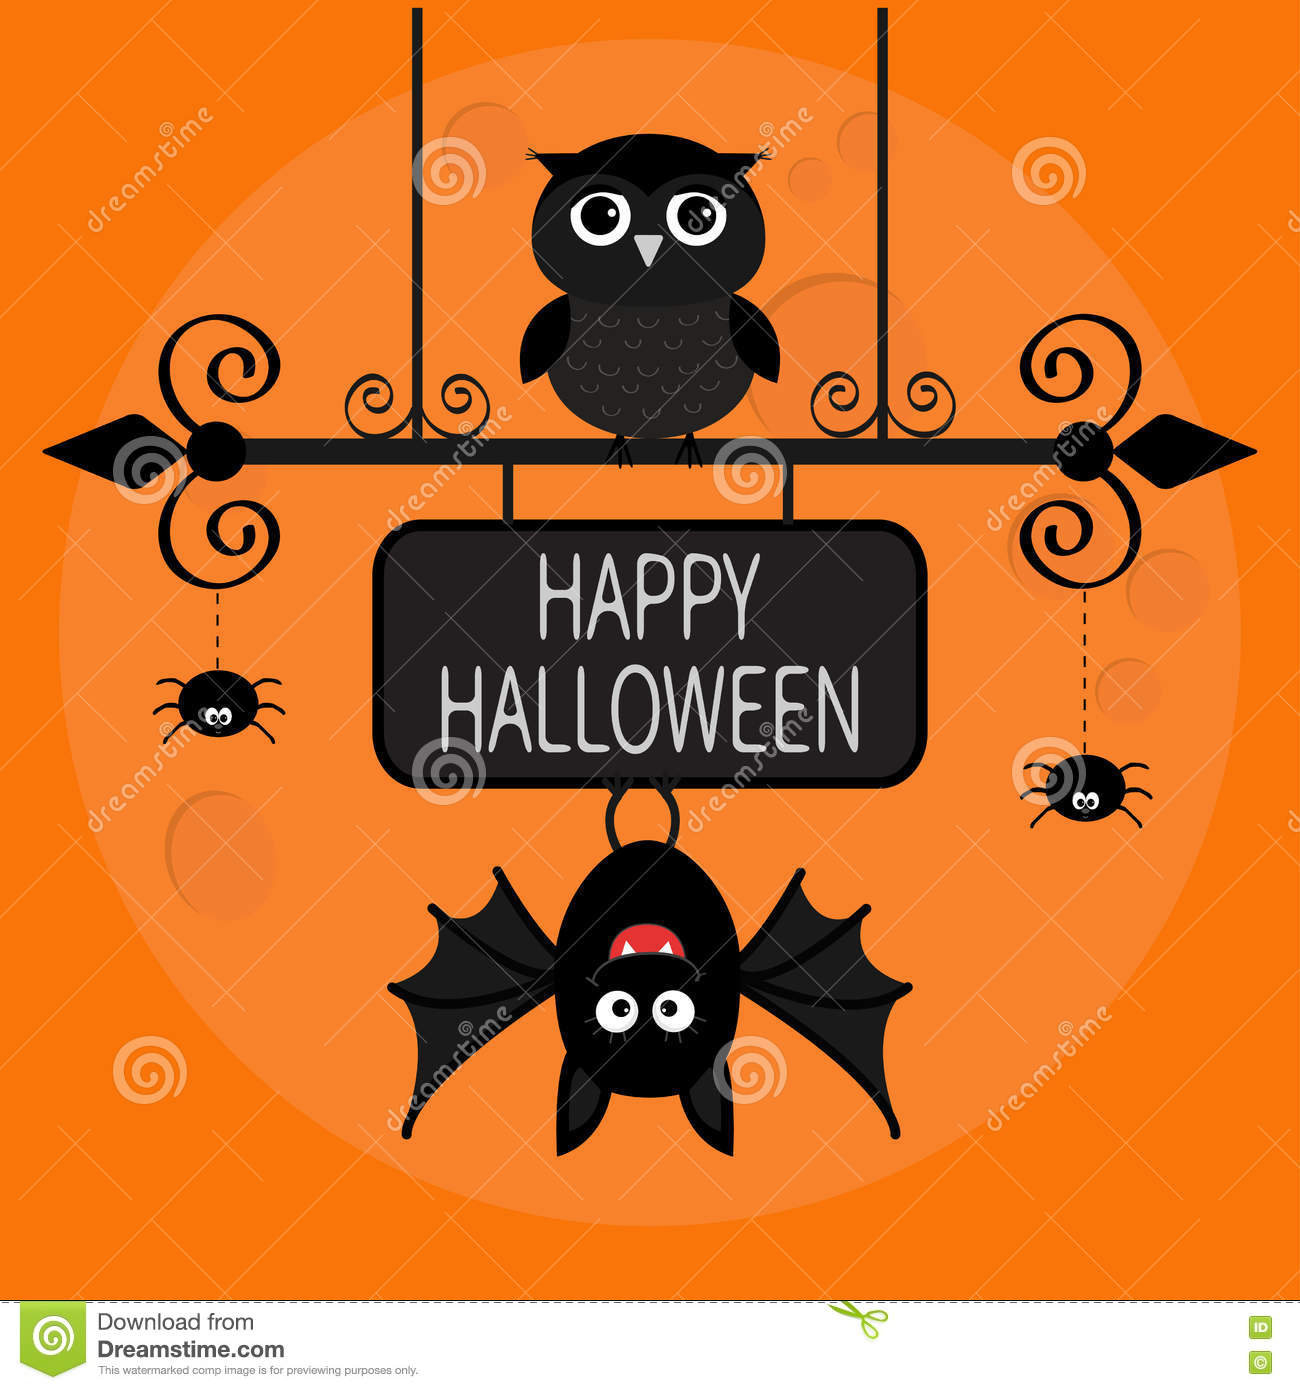 Happy Halloween Card. Bat Hanging On Wrought Iron Sign Board. Owl Bird, Spide...